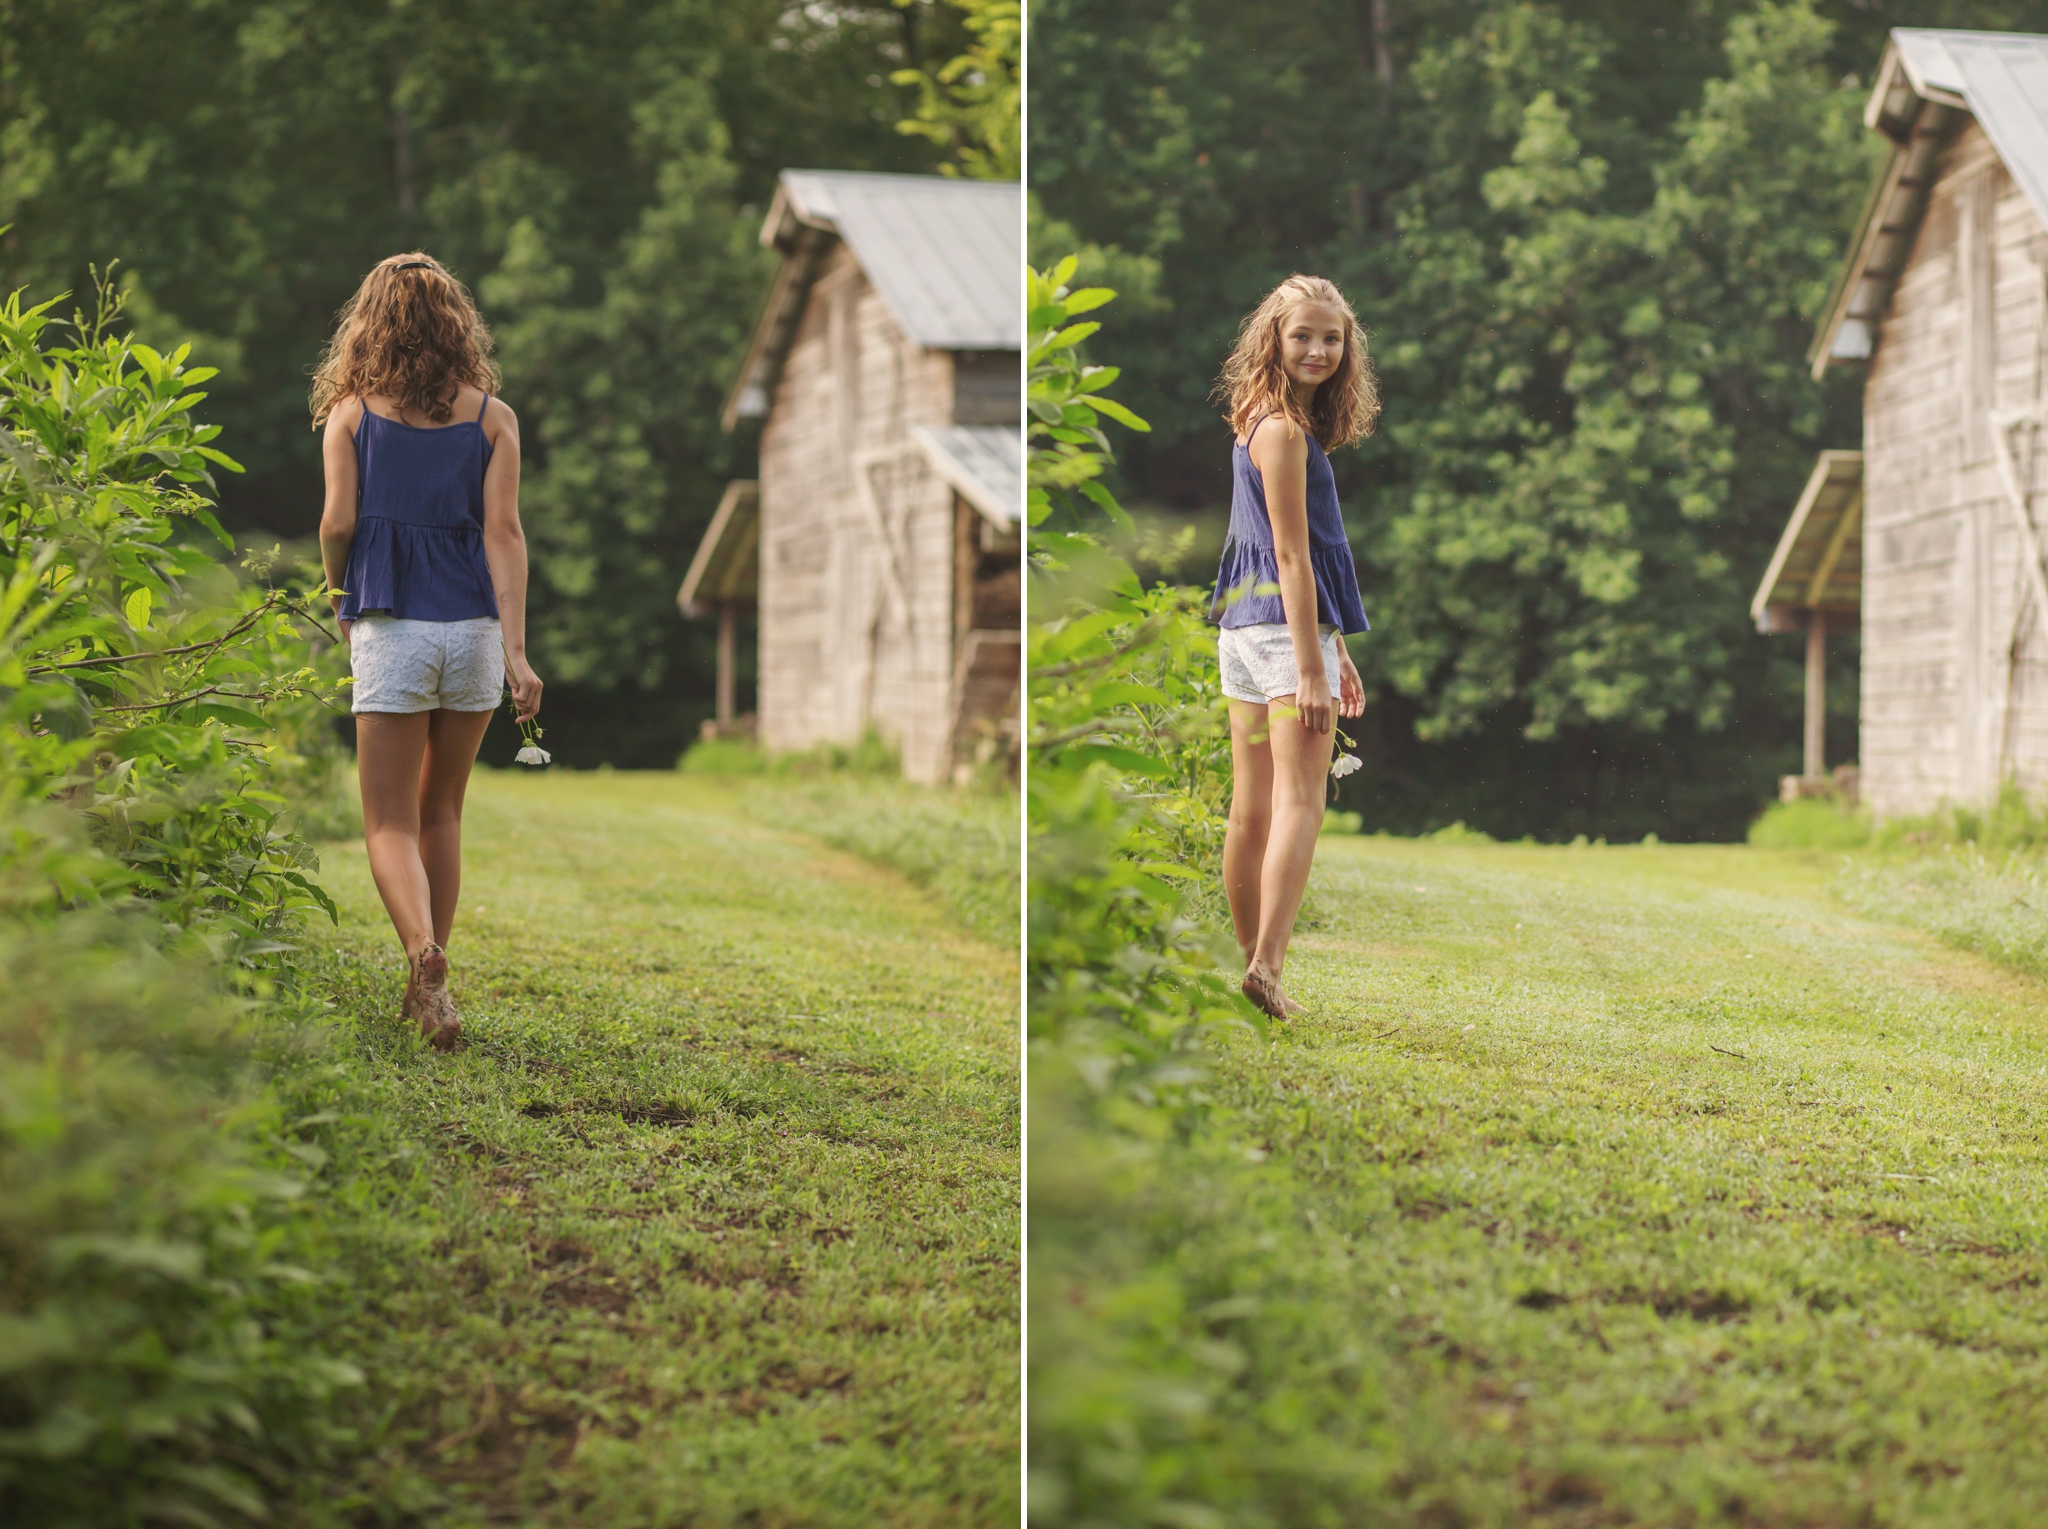 Child walks away from Candace Wolfenbarger, Sanford NC child photographer.